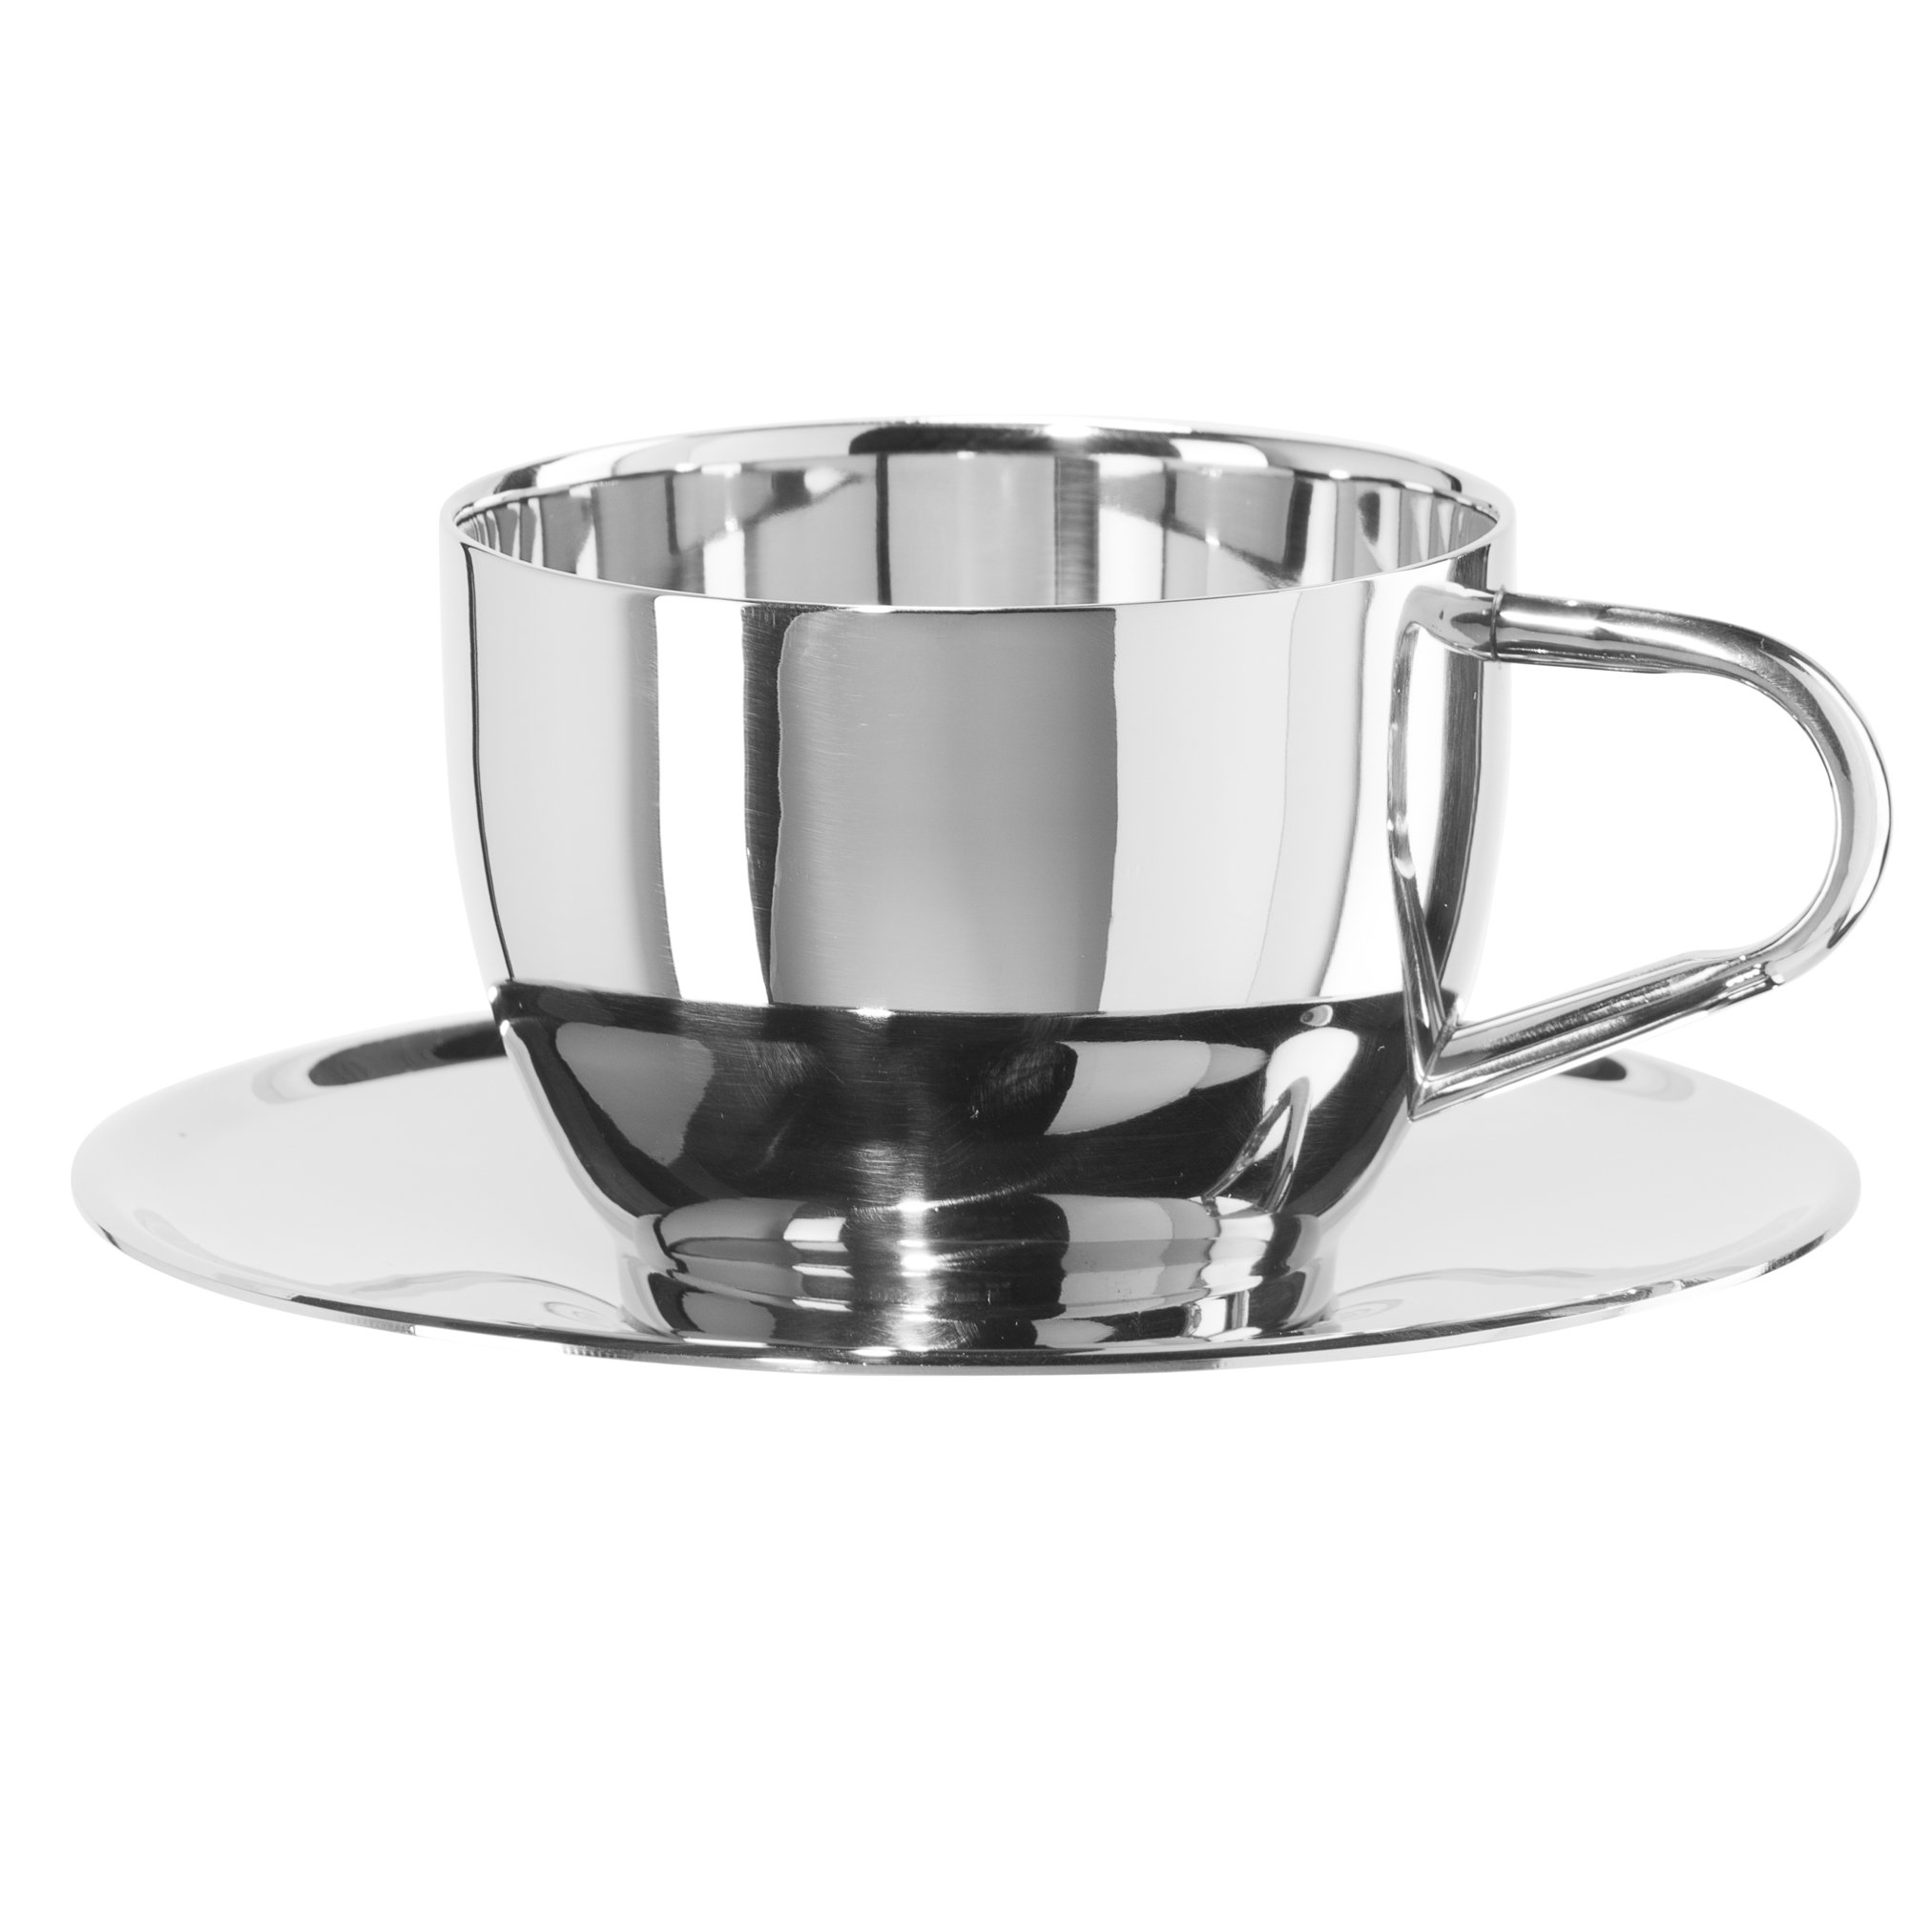 Oggi 6595.0 Cappuccino Cup & Saucer Double Wall (8 Oz), Stainless